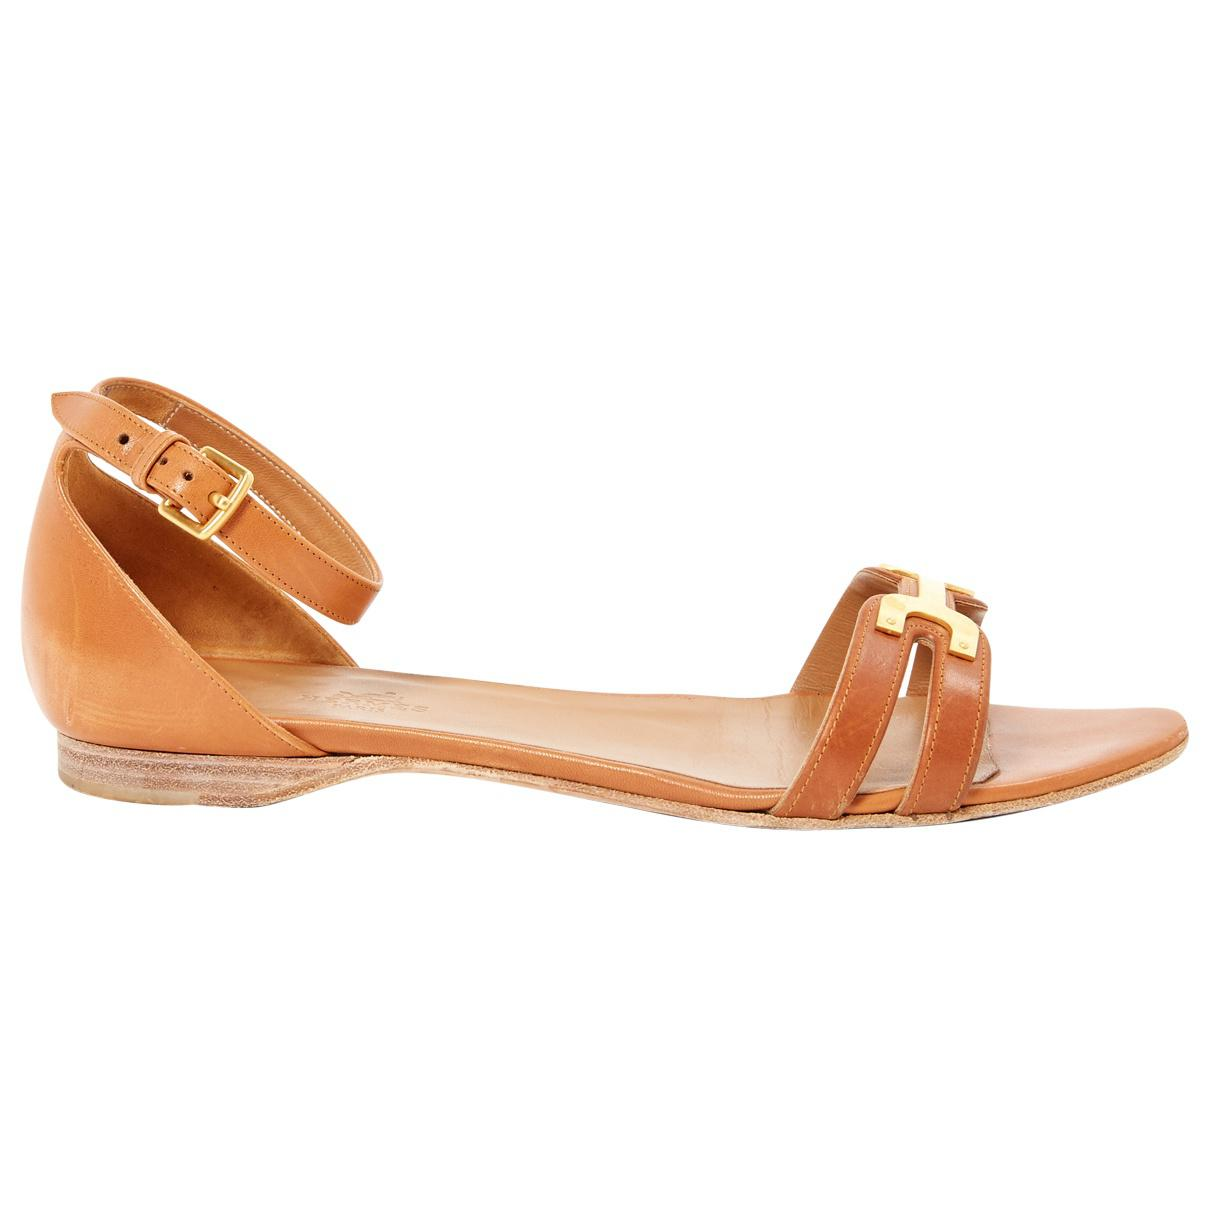 ca6246113dd7 Hermès. Women s Brown Leather Sandals. £389 £350 From Vestiaire Collective